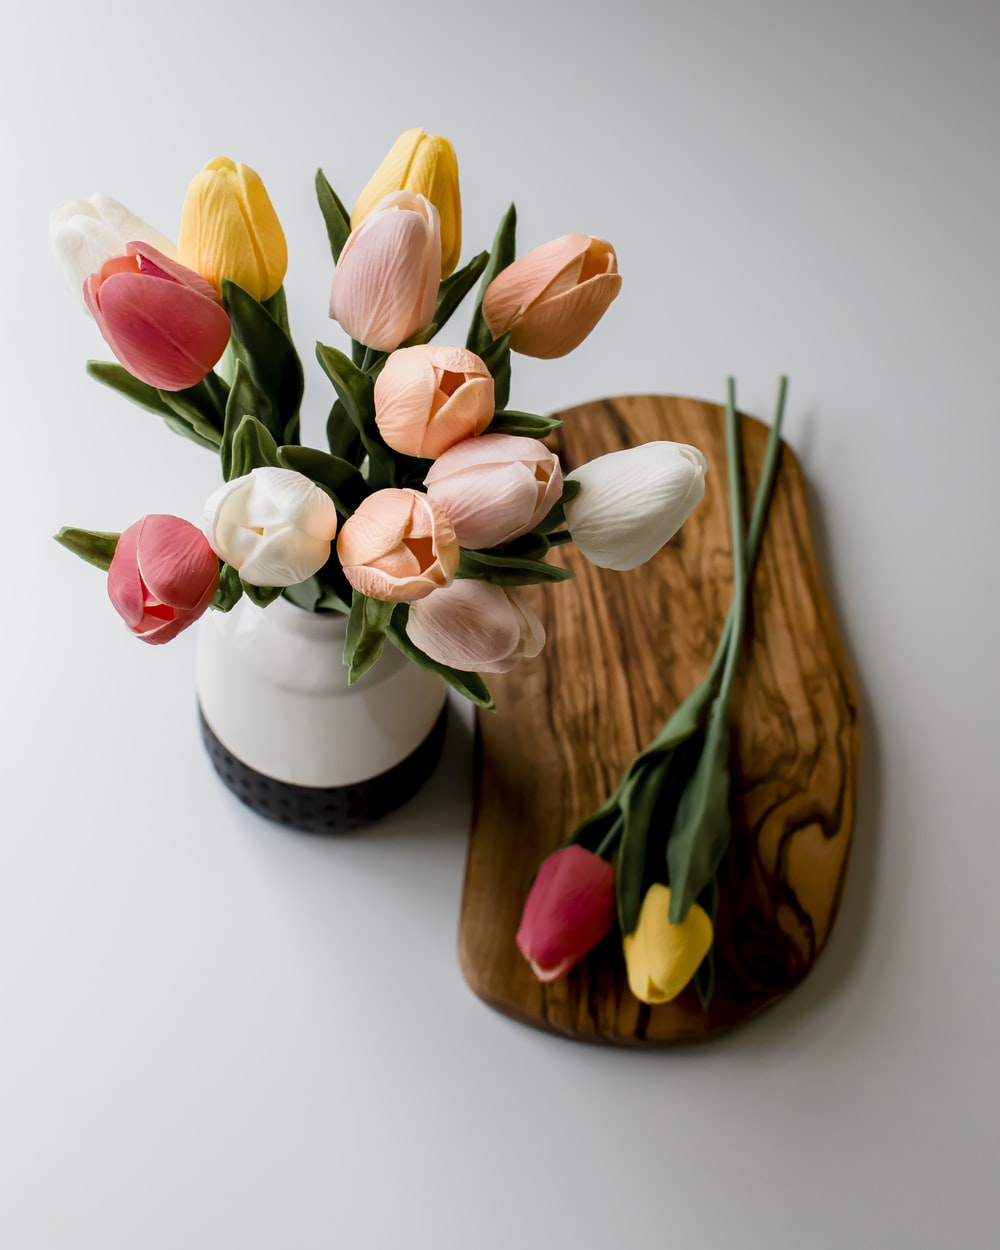 pink and white tulips in white and brown ceramic vase